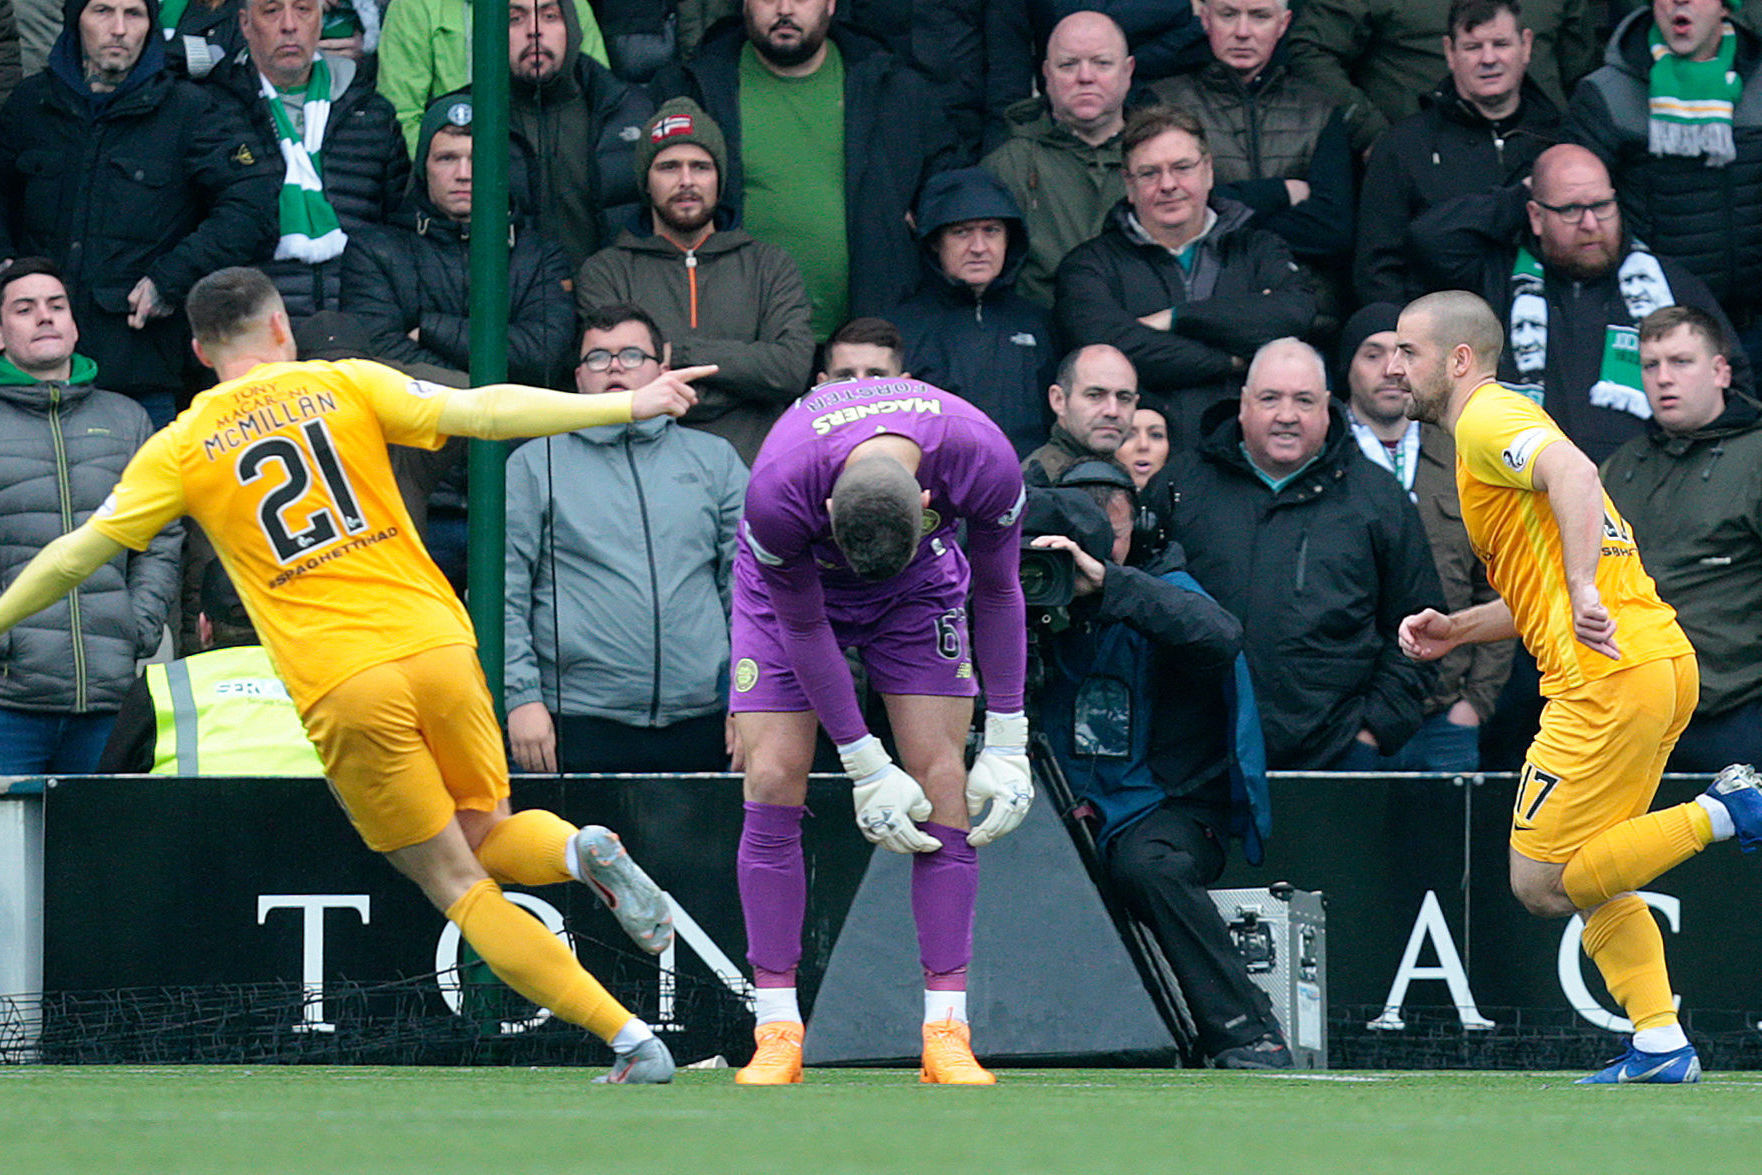 Livingston 2 Celtic 0: Livi Lions roar to victory as both sides get what they deserve